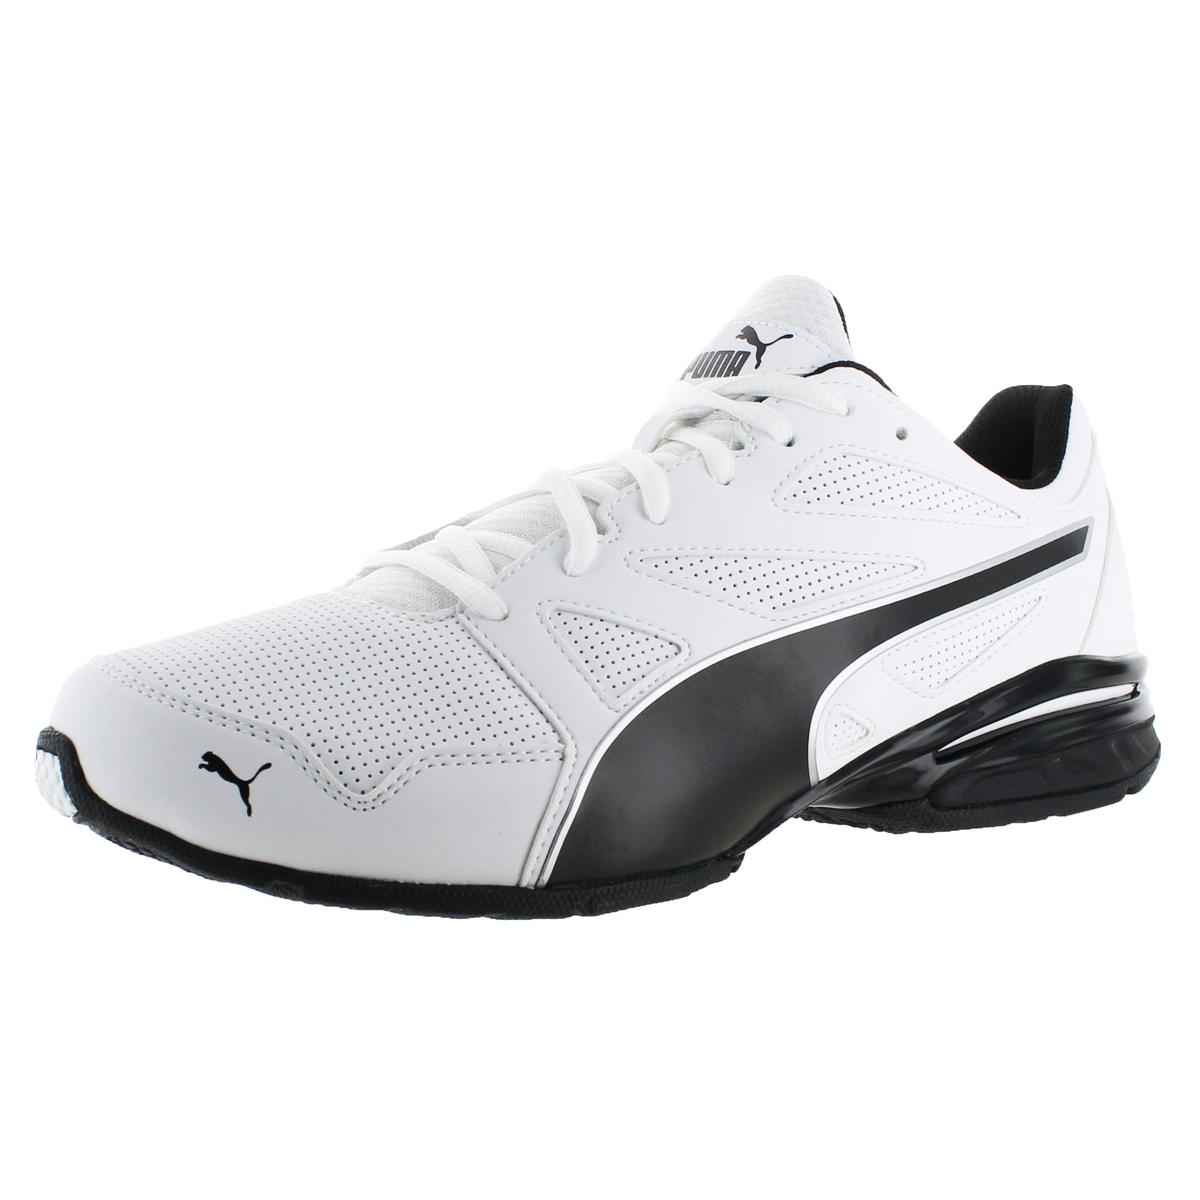 a7f97e1a135b Puma Tazon Modern SL FM Men s Cross Training Sneakers Shoes